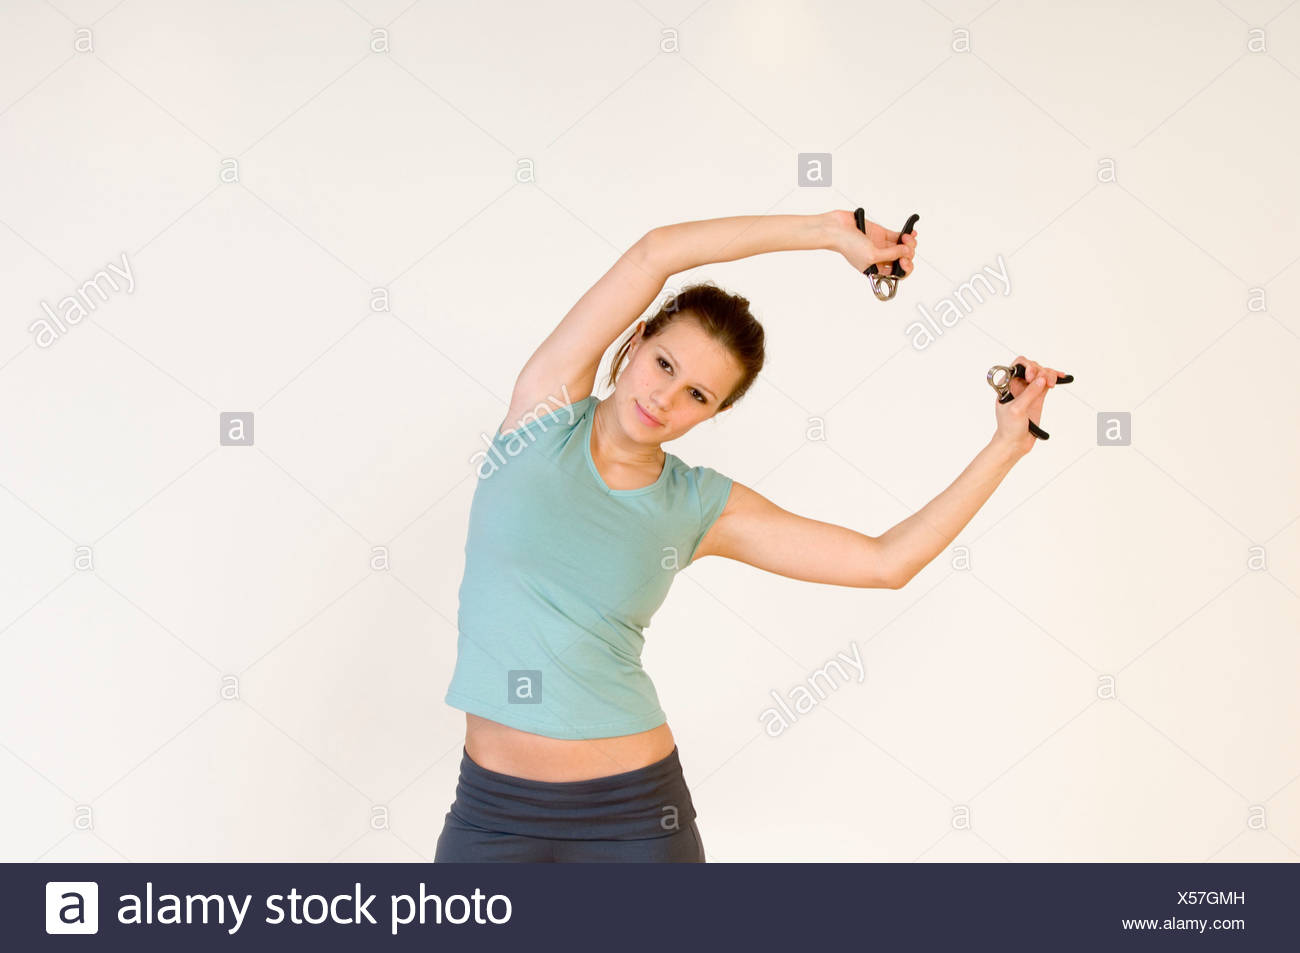 young woman making excercise with handgrip - Stock Image